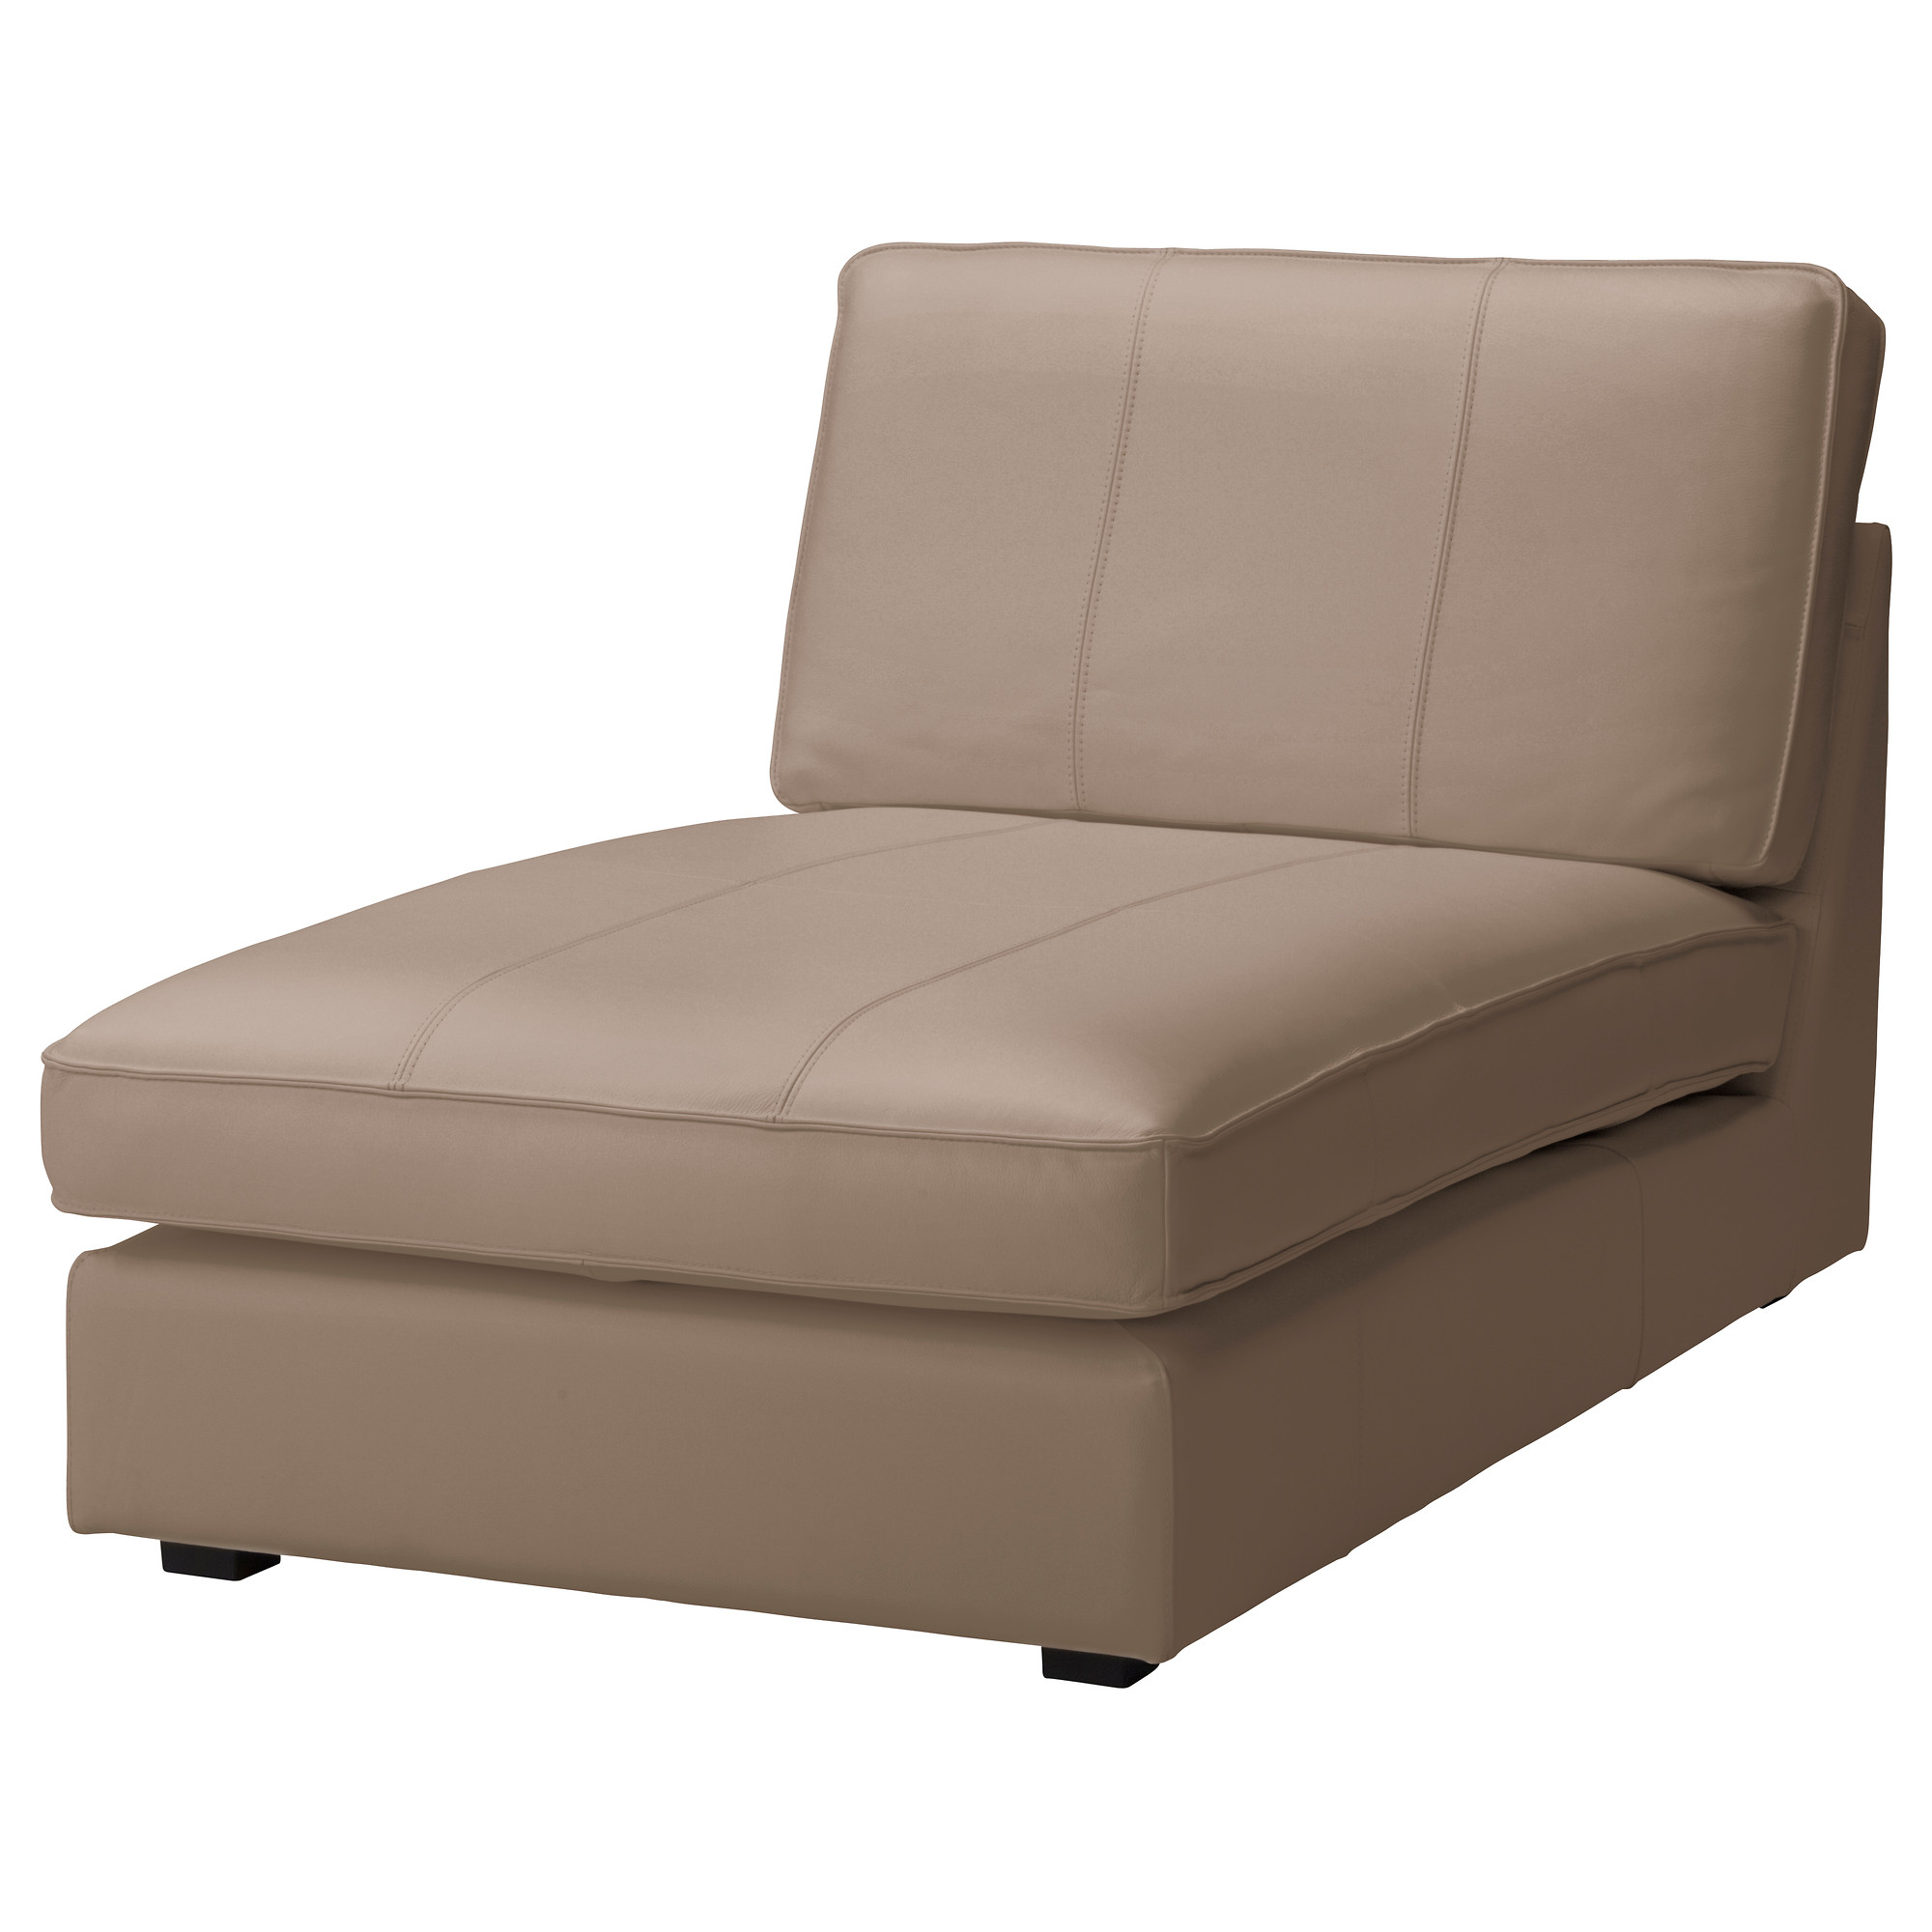 Permalink to Great 30  Chaise Lounge Clearance